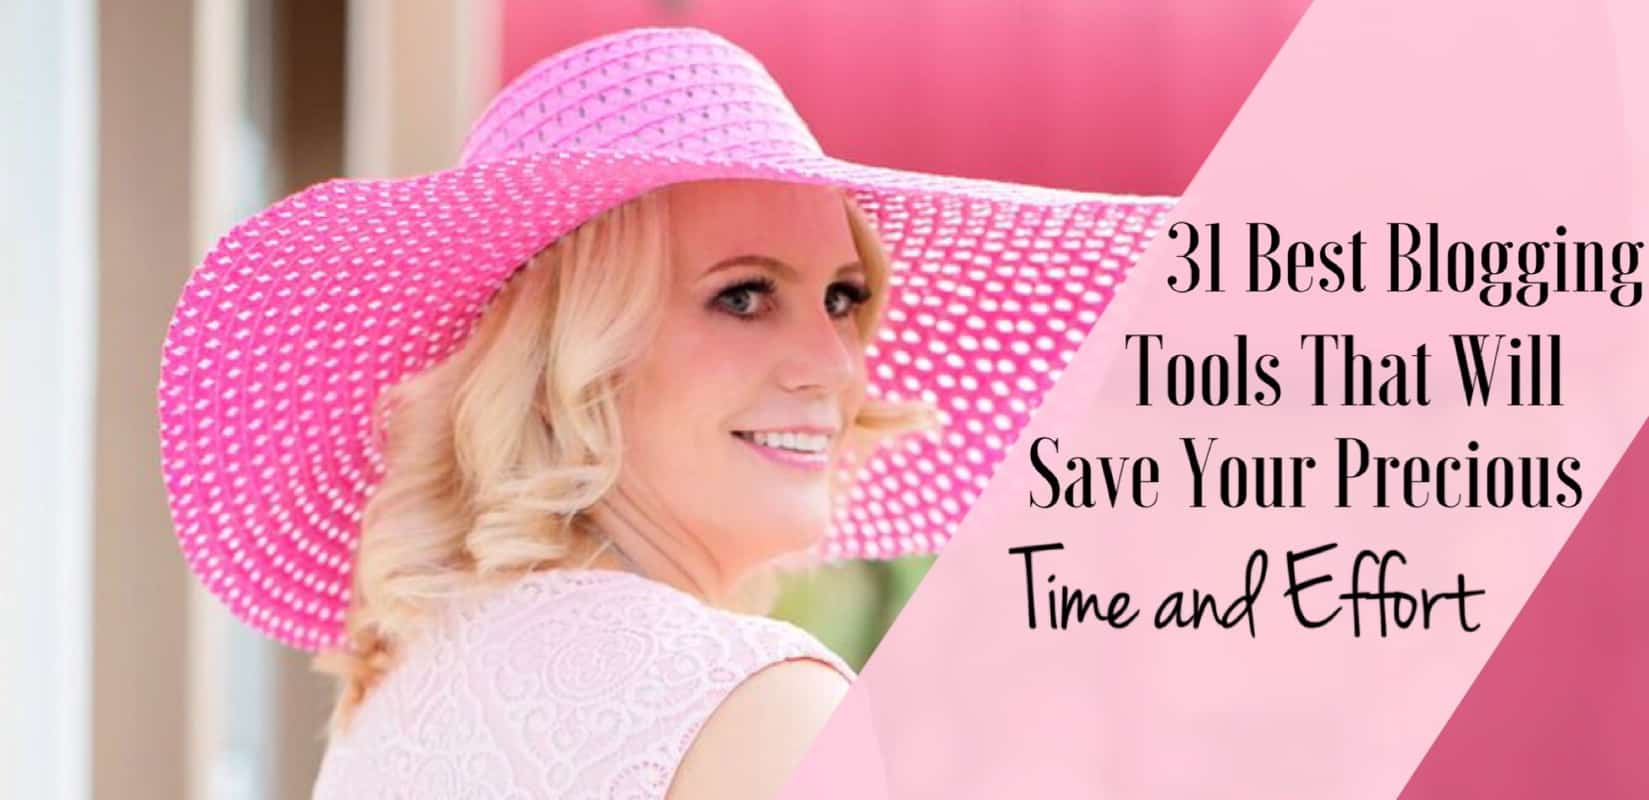 31 Best Blogging Tools That Will Save You Precious Time and Effort